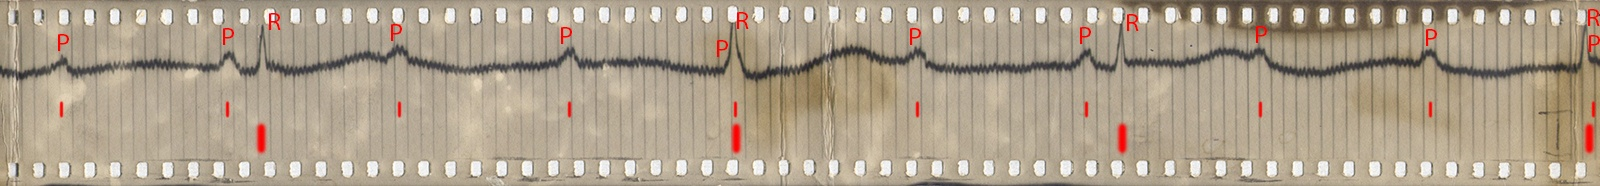 photo ECG explained